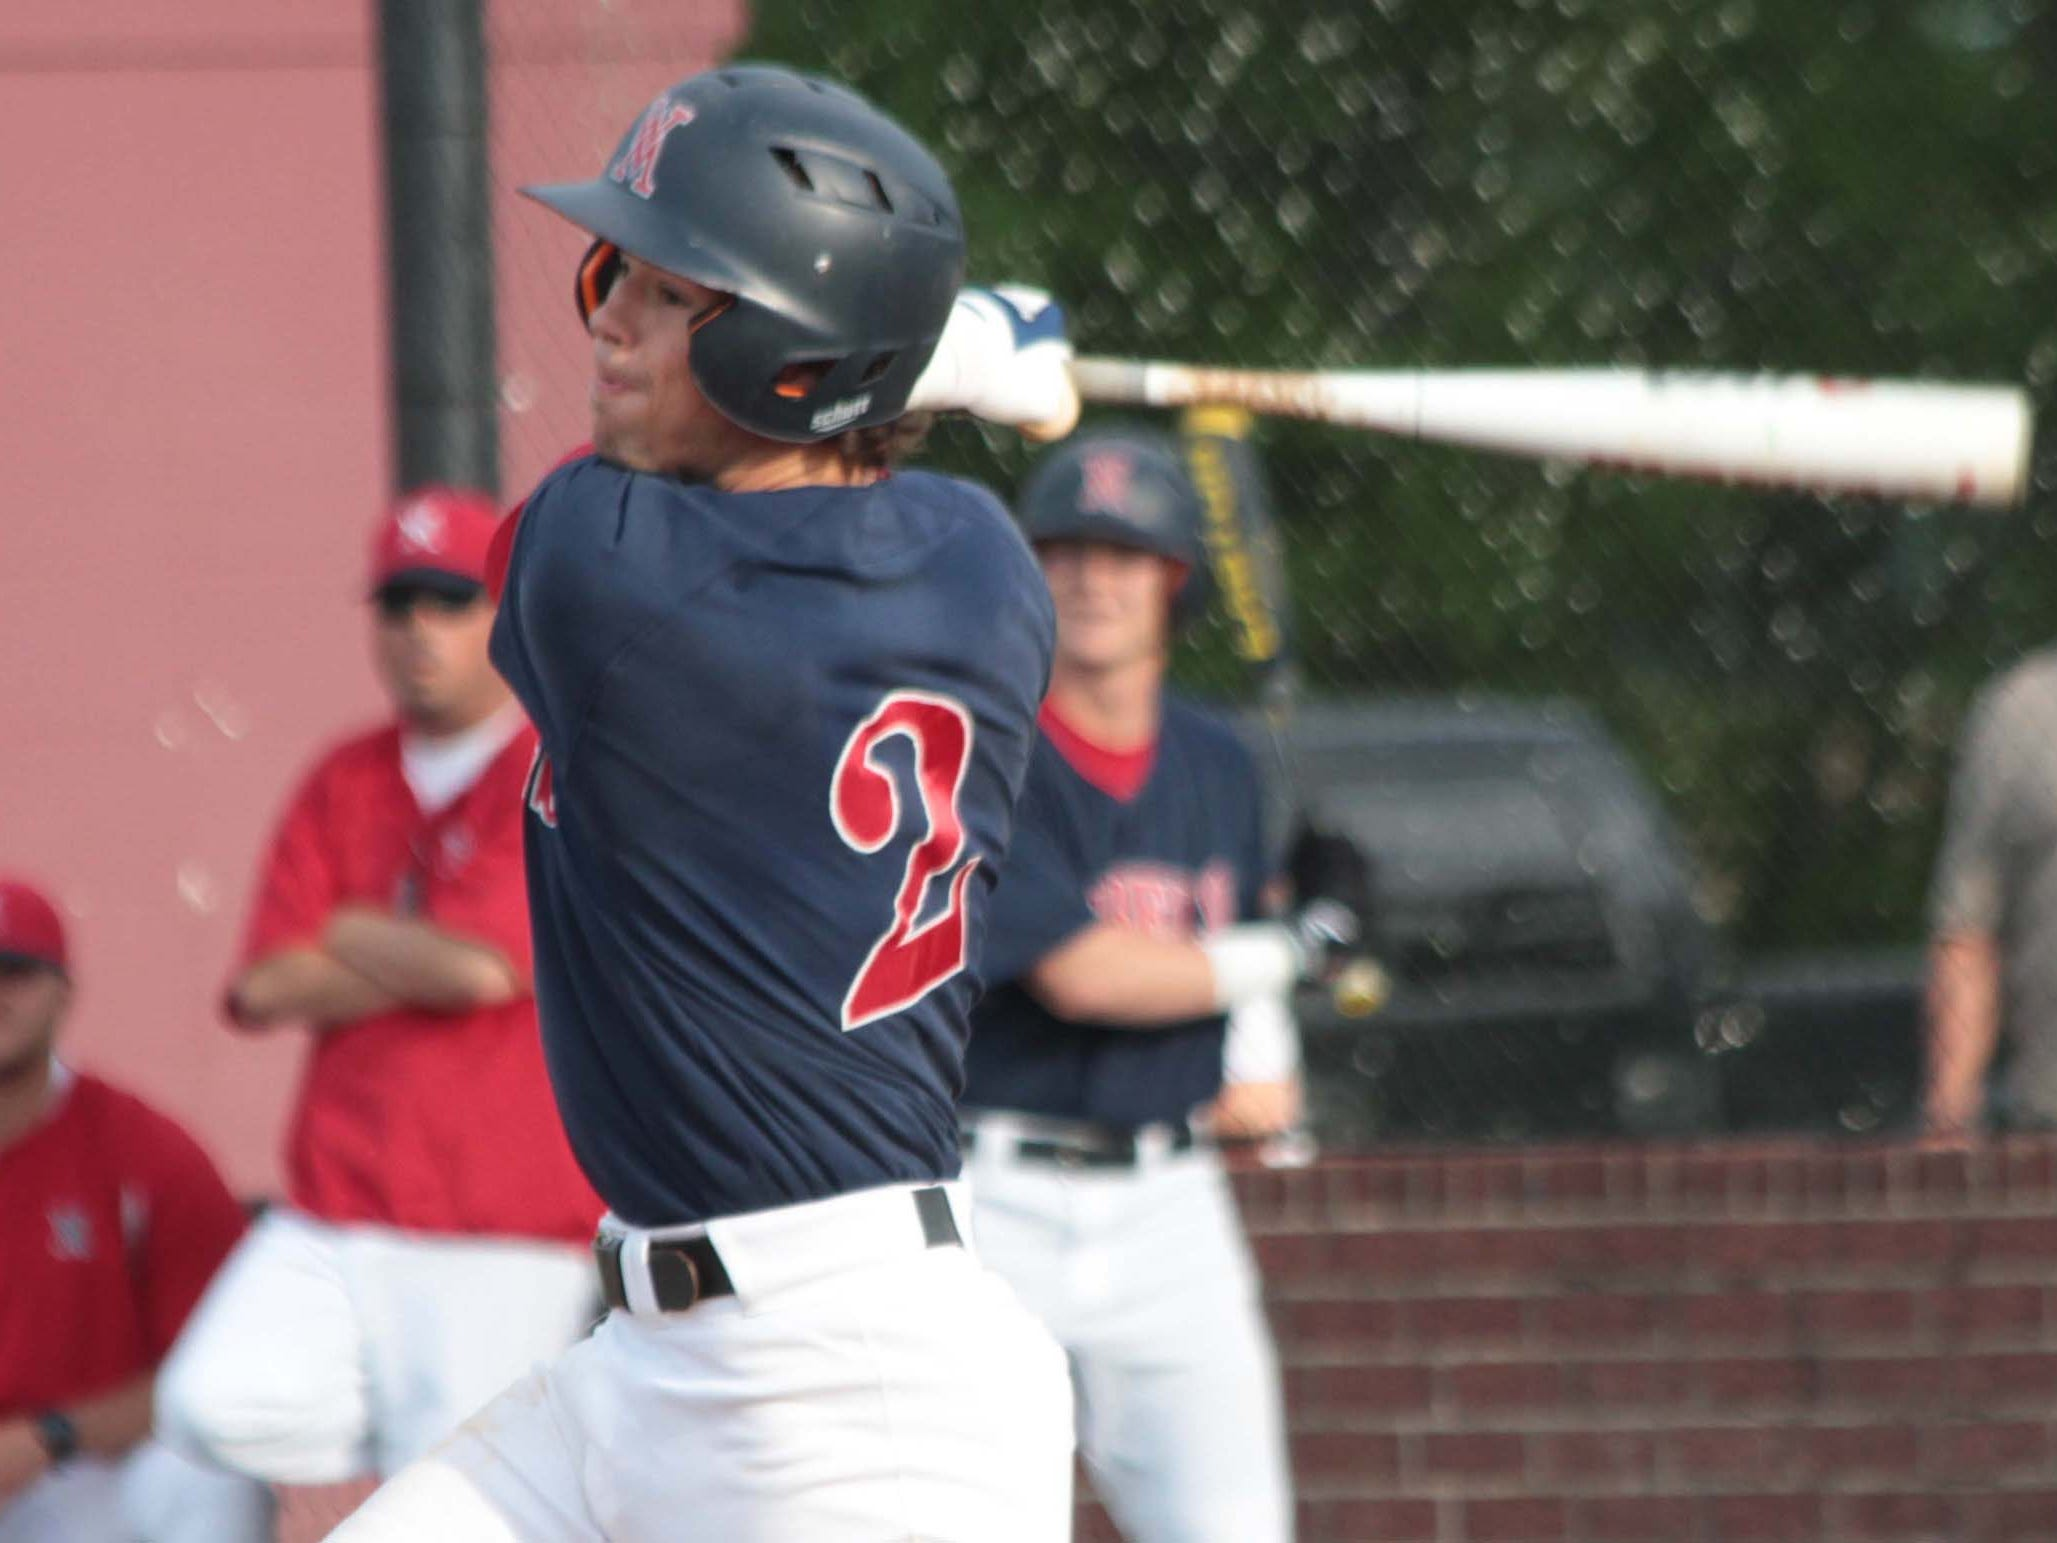 West Monroe saw its 13-game win streak snapped Tuesday in a 2-1 loss against Airline.